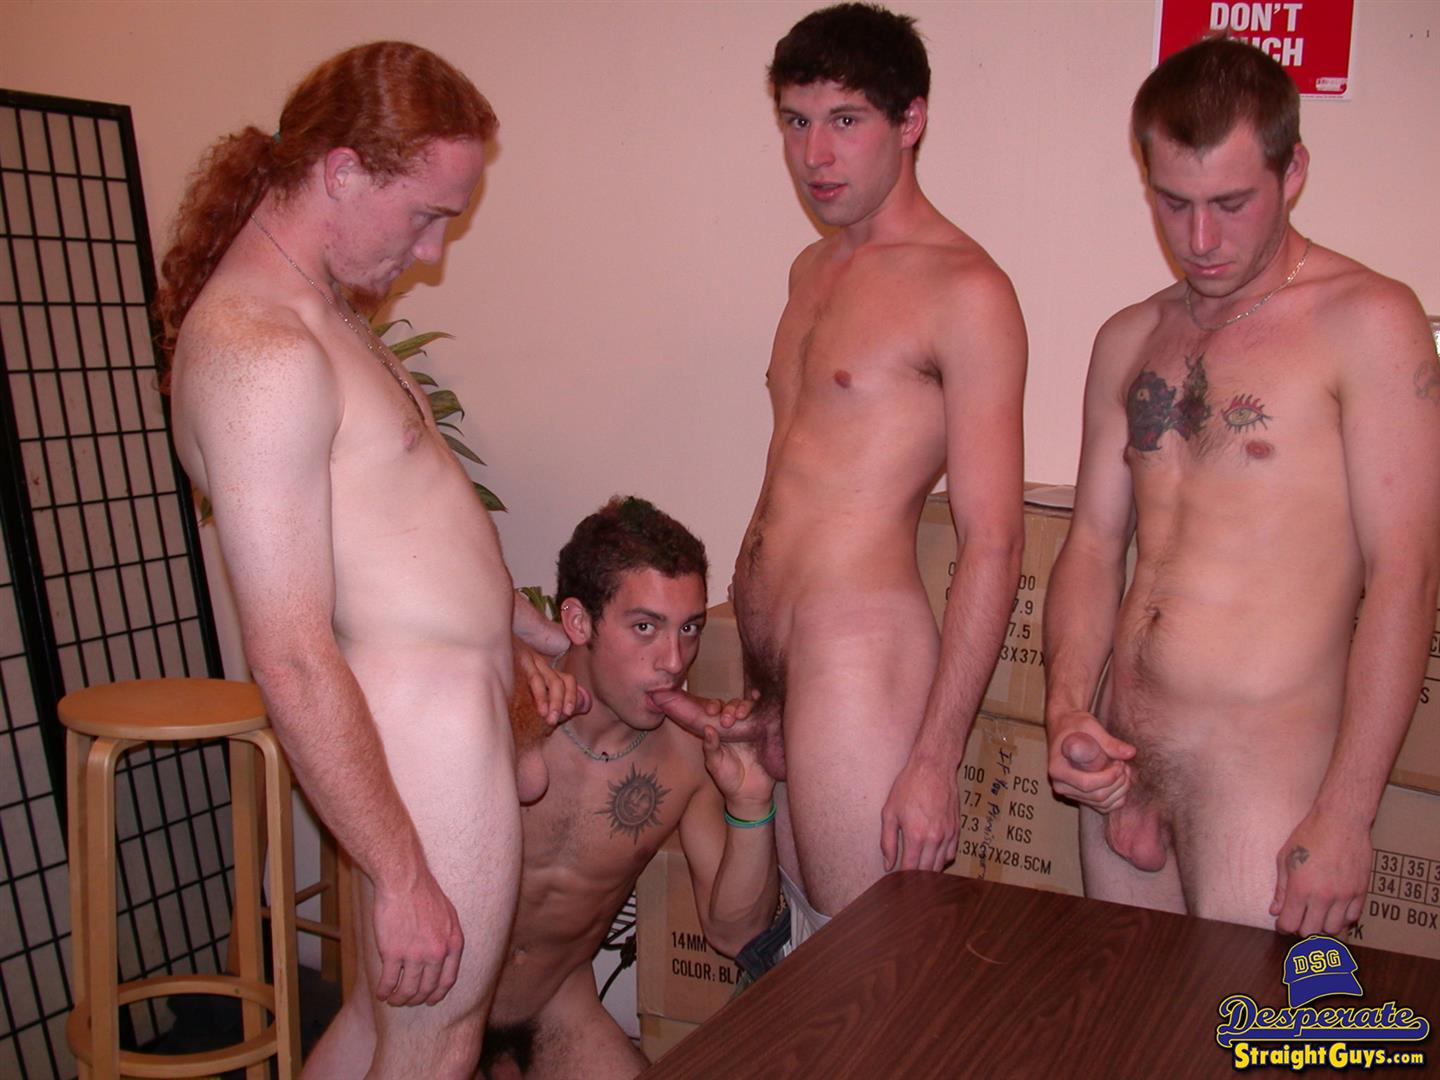 Desperate-Straight-Guys-DJ-and-Aires-and-Ryley-Nyce-and-Cory-Woodall-Flip-Flop-Fucking-Amateur-Gay-Porn-03 Desperate Straight Guys Flip Flop Fucking For Cash